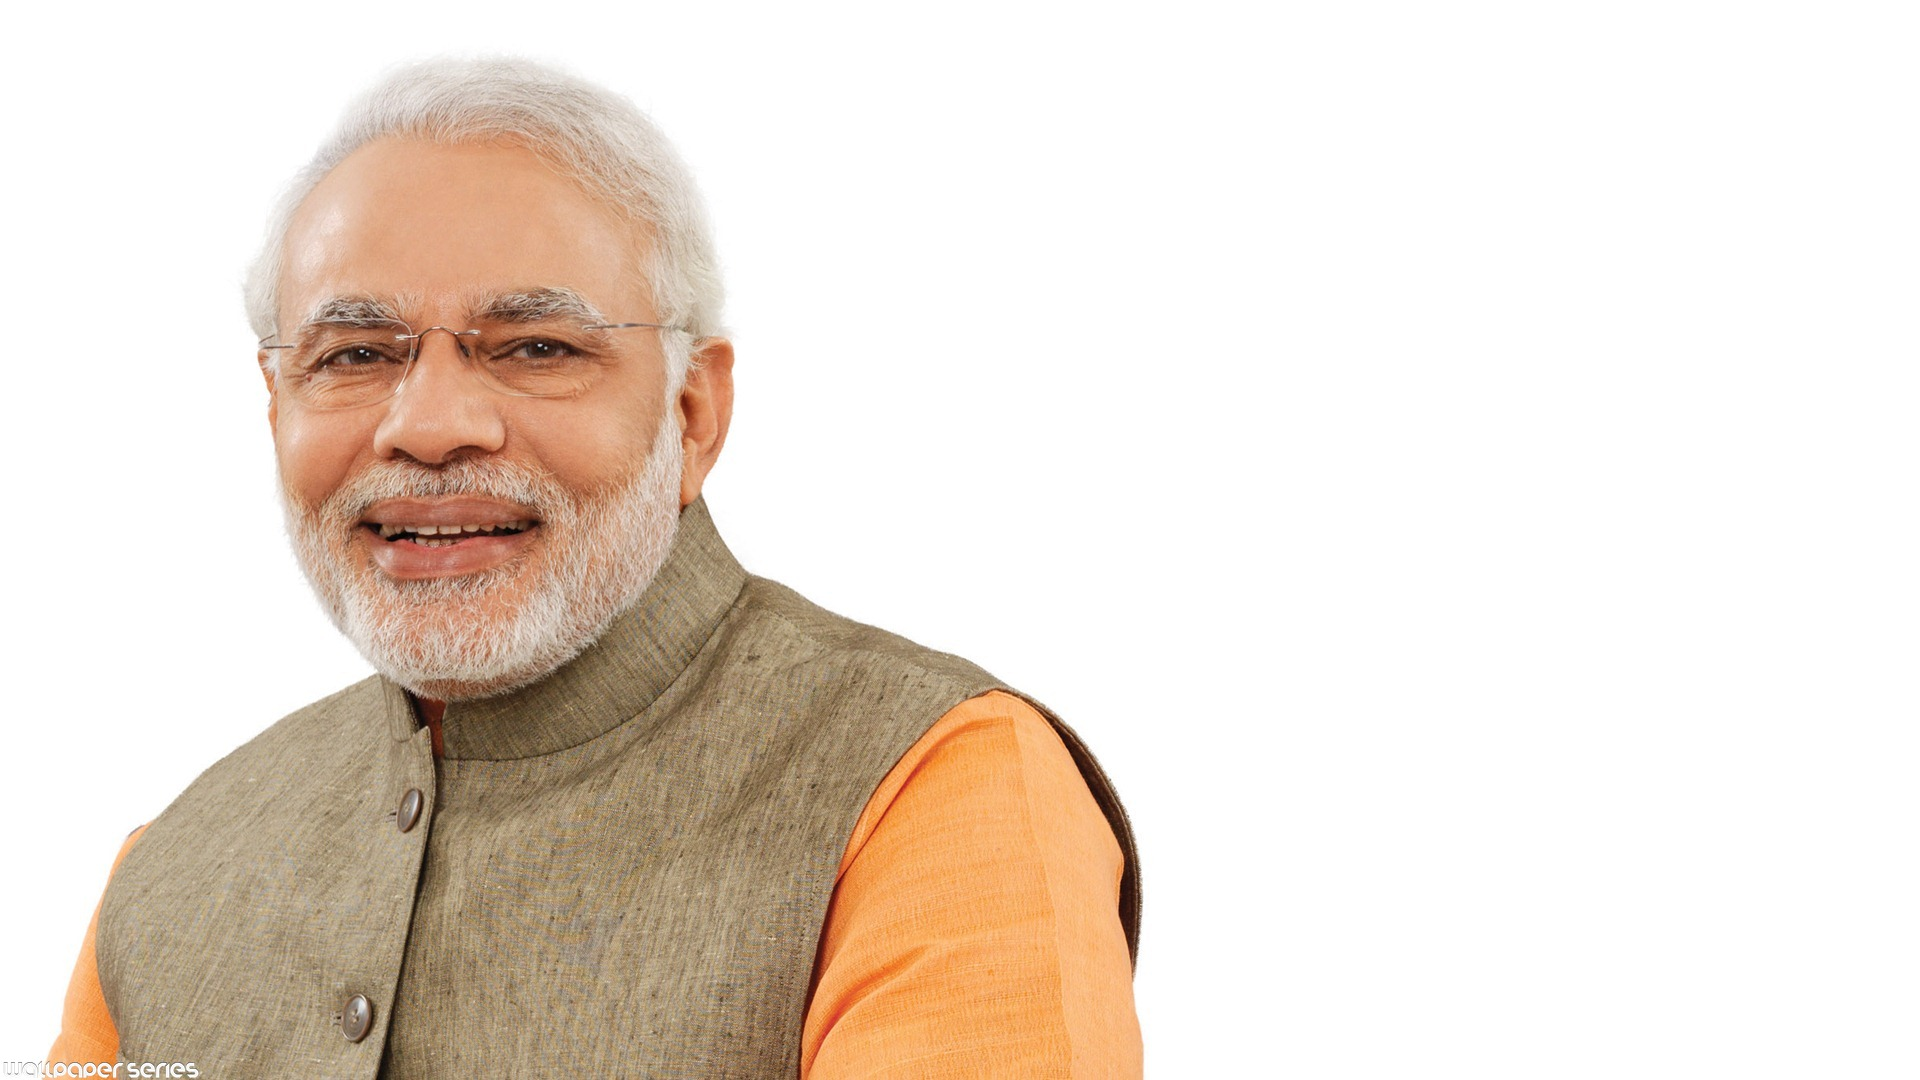 Narendra modi cute wallpaper